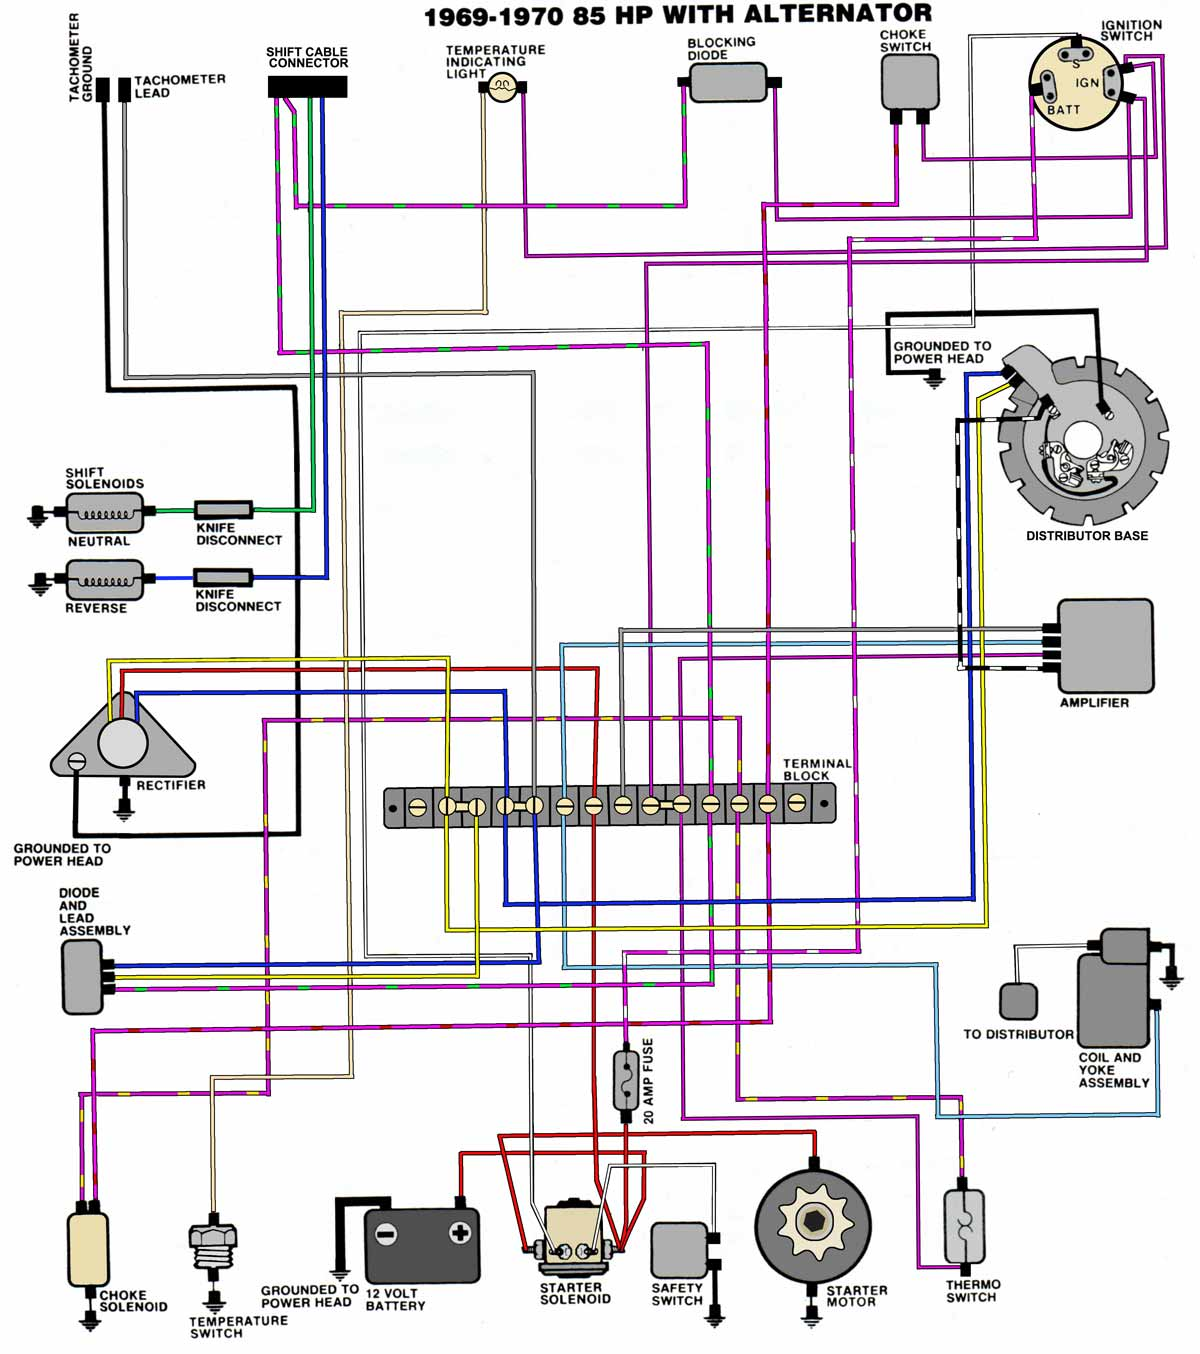 Evinrude Johnson Outboard Wiring Diagrams Mastertech Marine Q-See Wiring  Diagram Hp Wiring Diagram